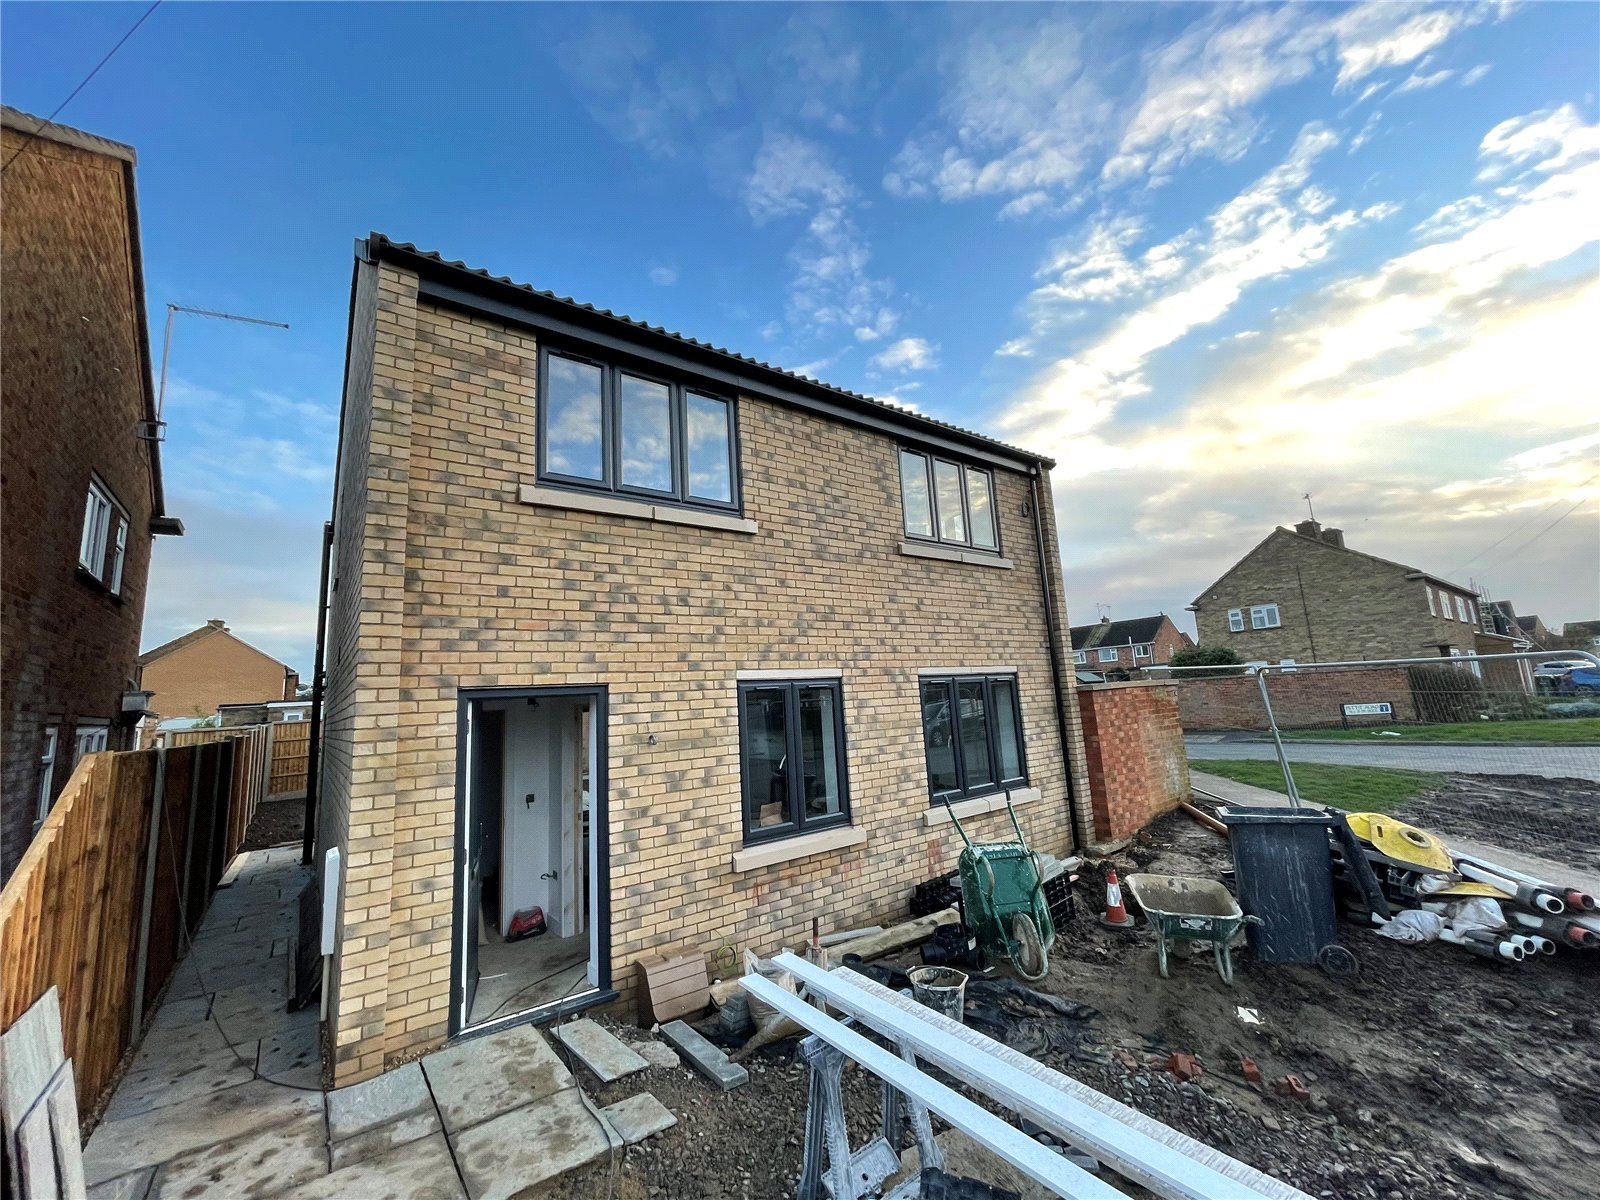 3 bed house for sale in Godmanchester, PE29 2DB, PE29